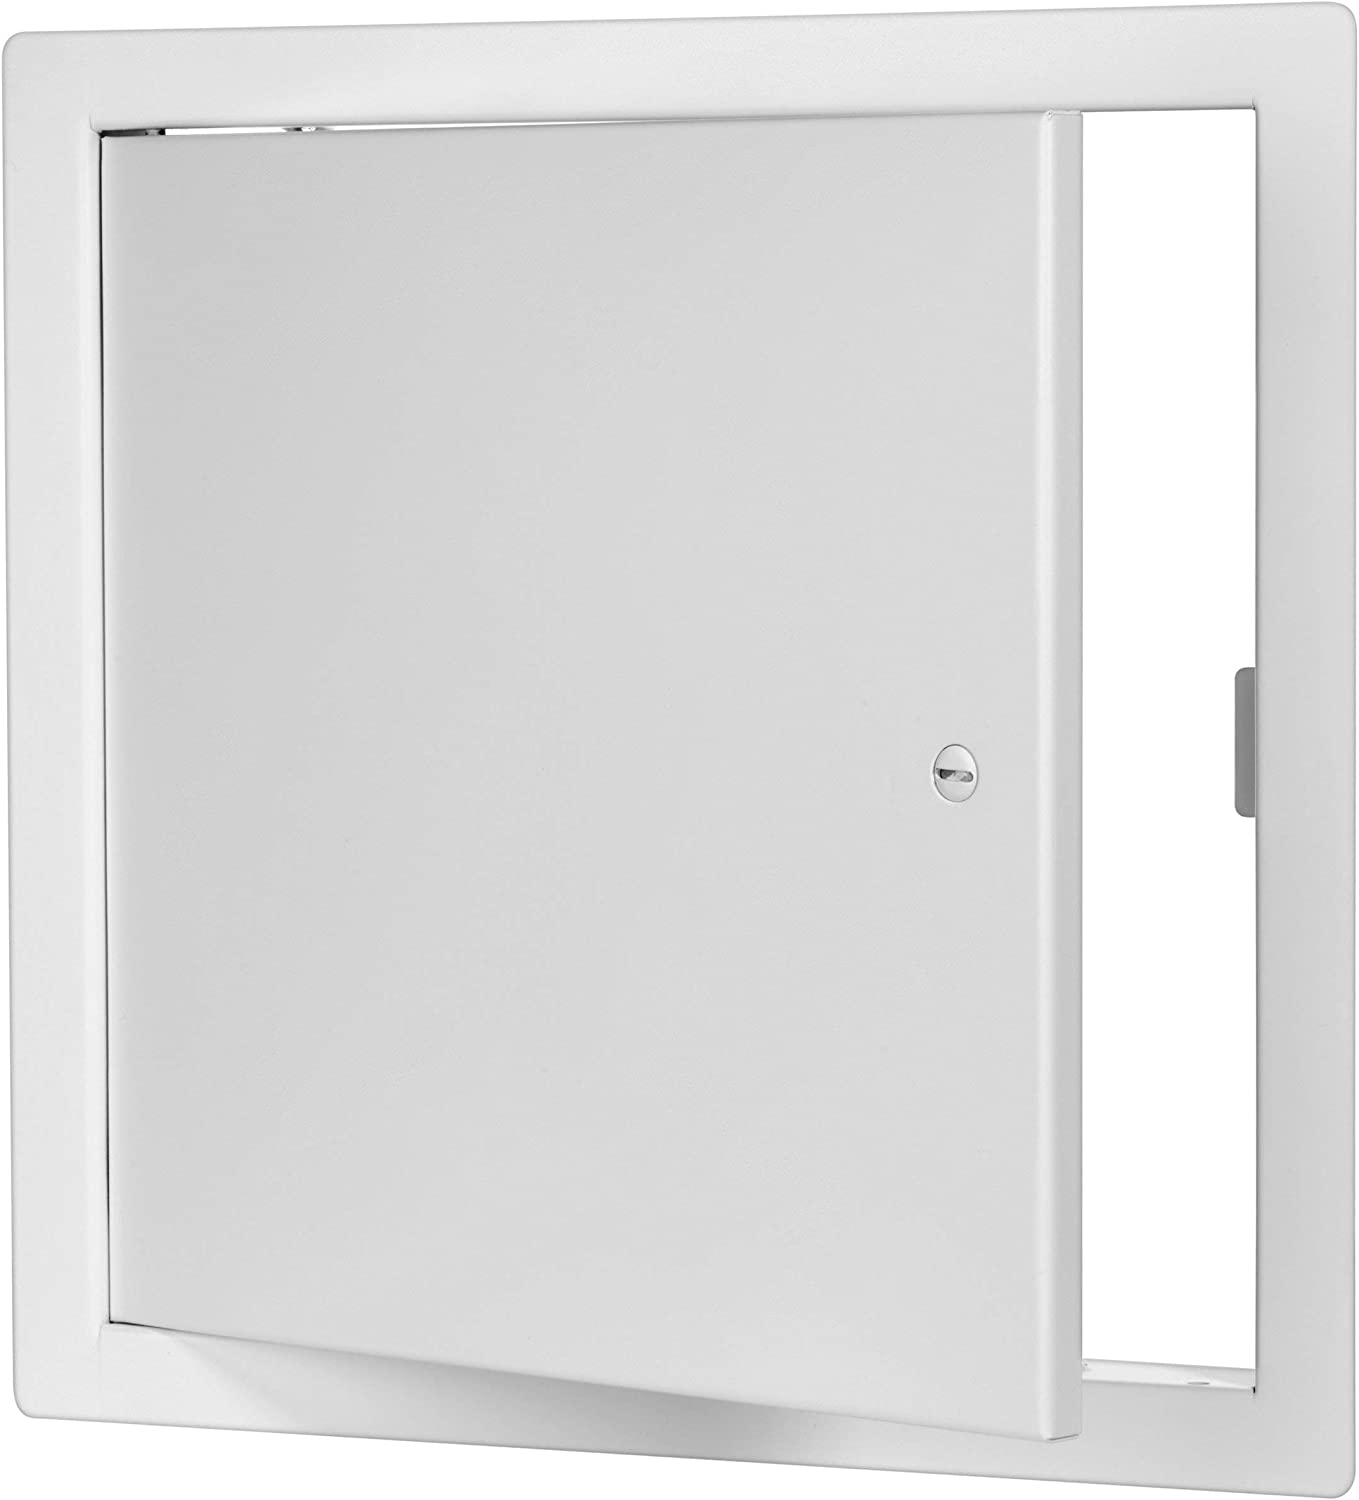 Premier 2002 Series Steel Access Door, 14 x 14 Flush Universal Mount, White (Screwdriver Latch)